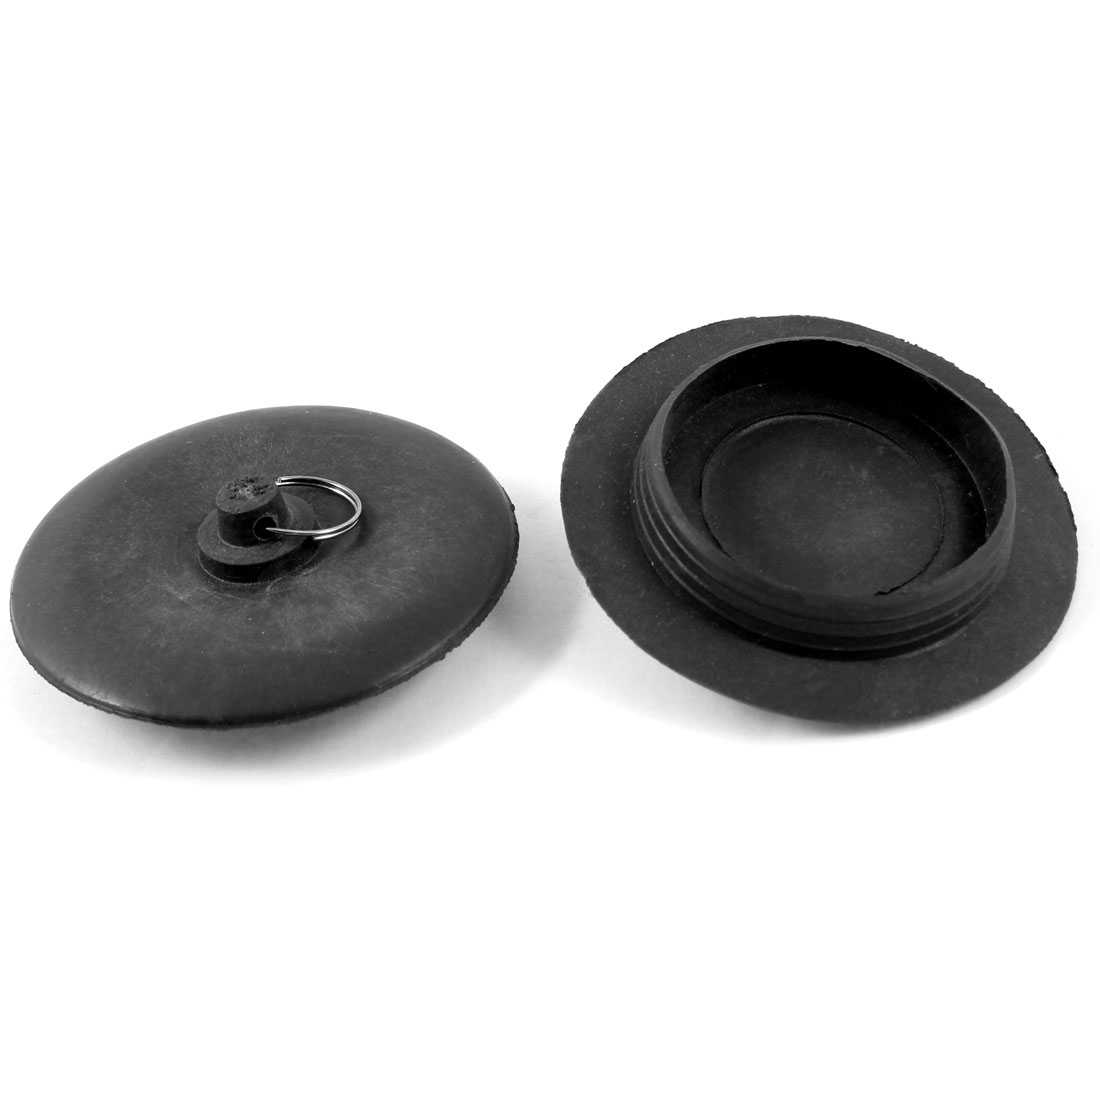 Unique Bargains 2 Pieces Black Rubber Stopper Bathtub Sink Wash Basin Plug 46mm Male Thread